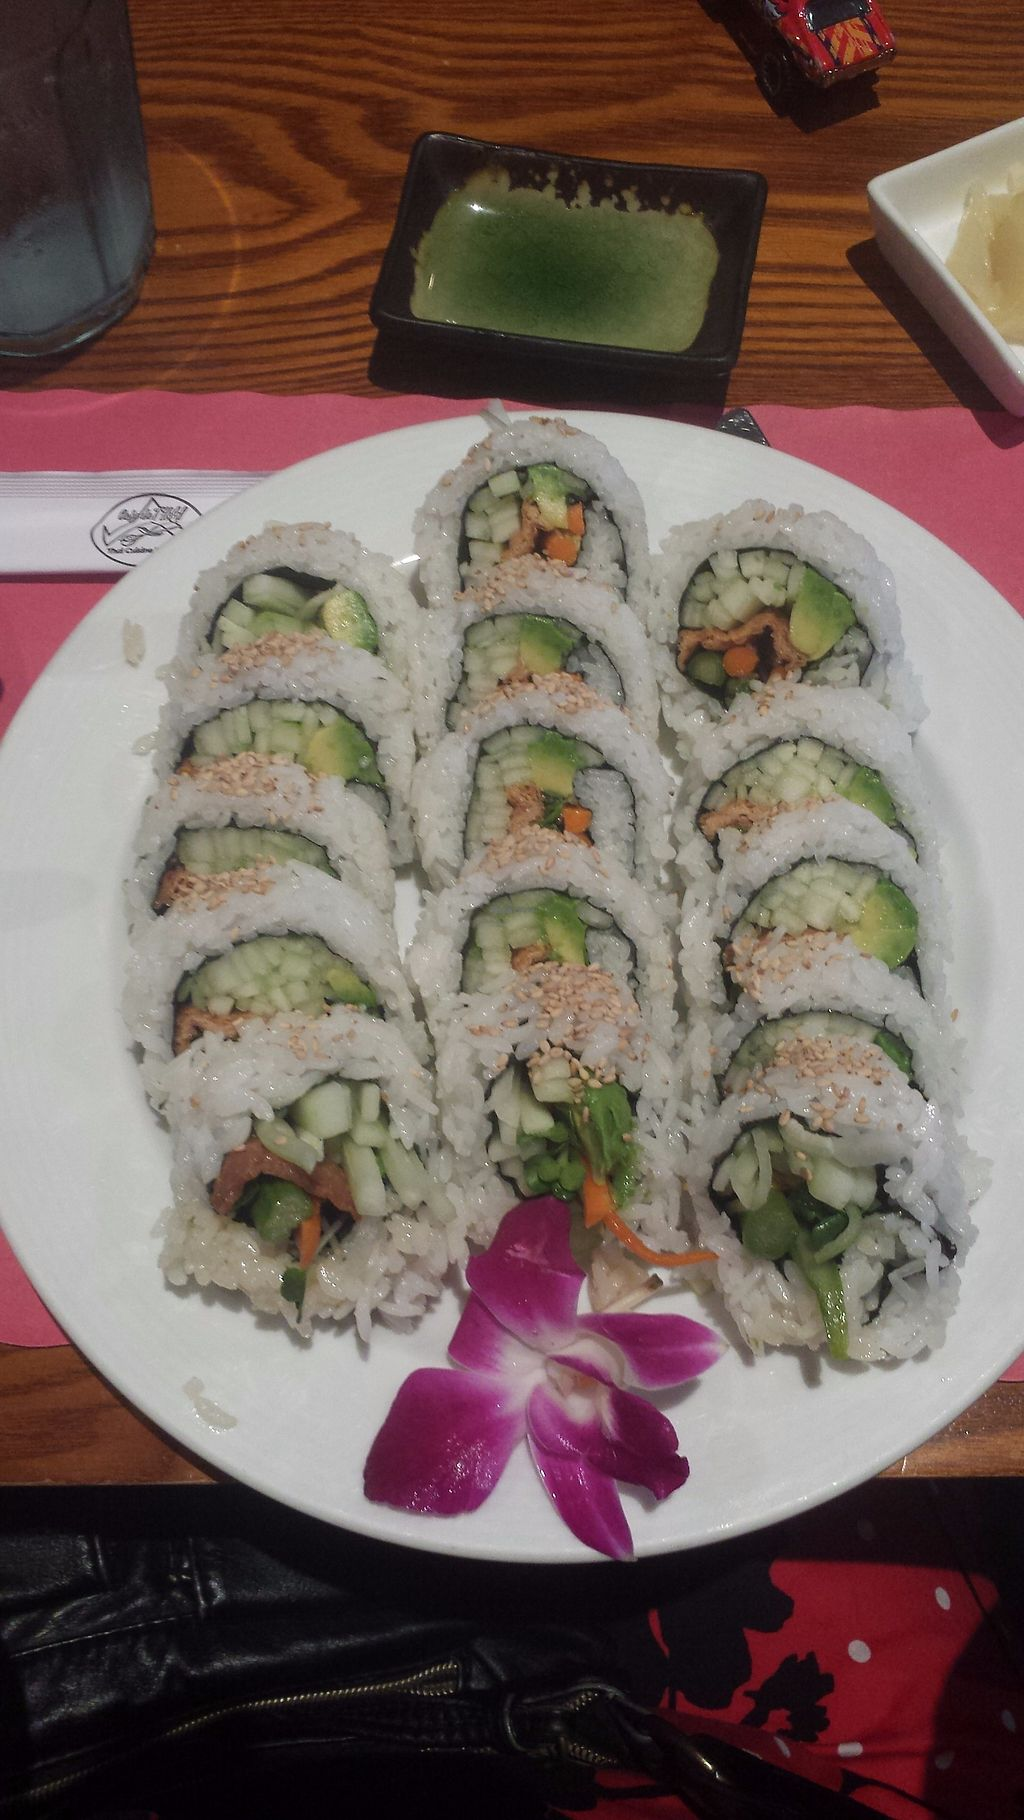 """Photo of Cafe de Thai  by <a href=""""/members/profile/youngfruitbat"""">youngfruitbat</a> <br/>Veggie Rolls <br/> November 12, 2017  - <a href='/contact/abuse/image/104871/324787'>Report</a>"""